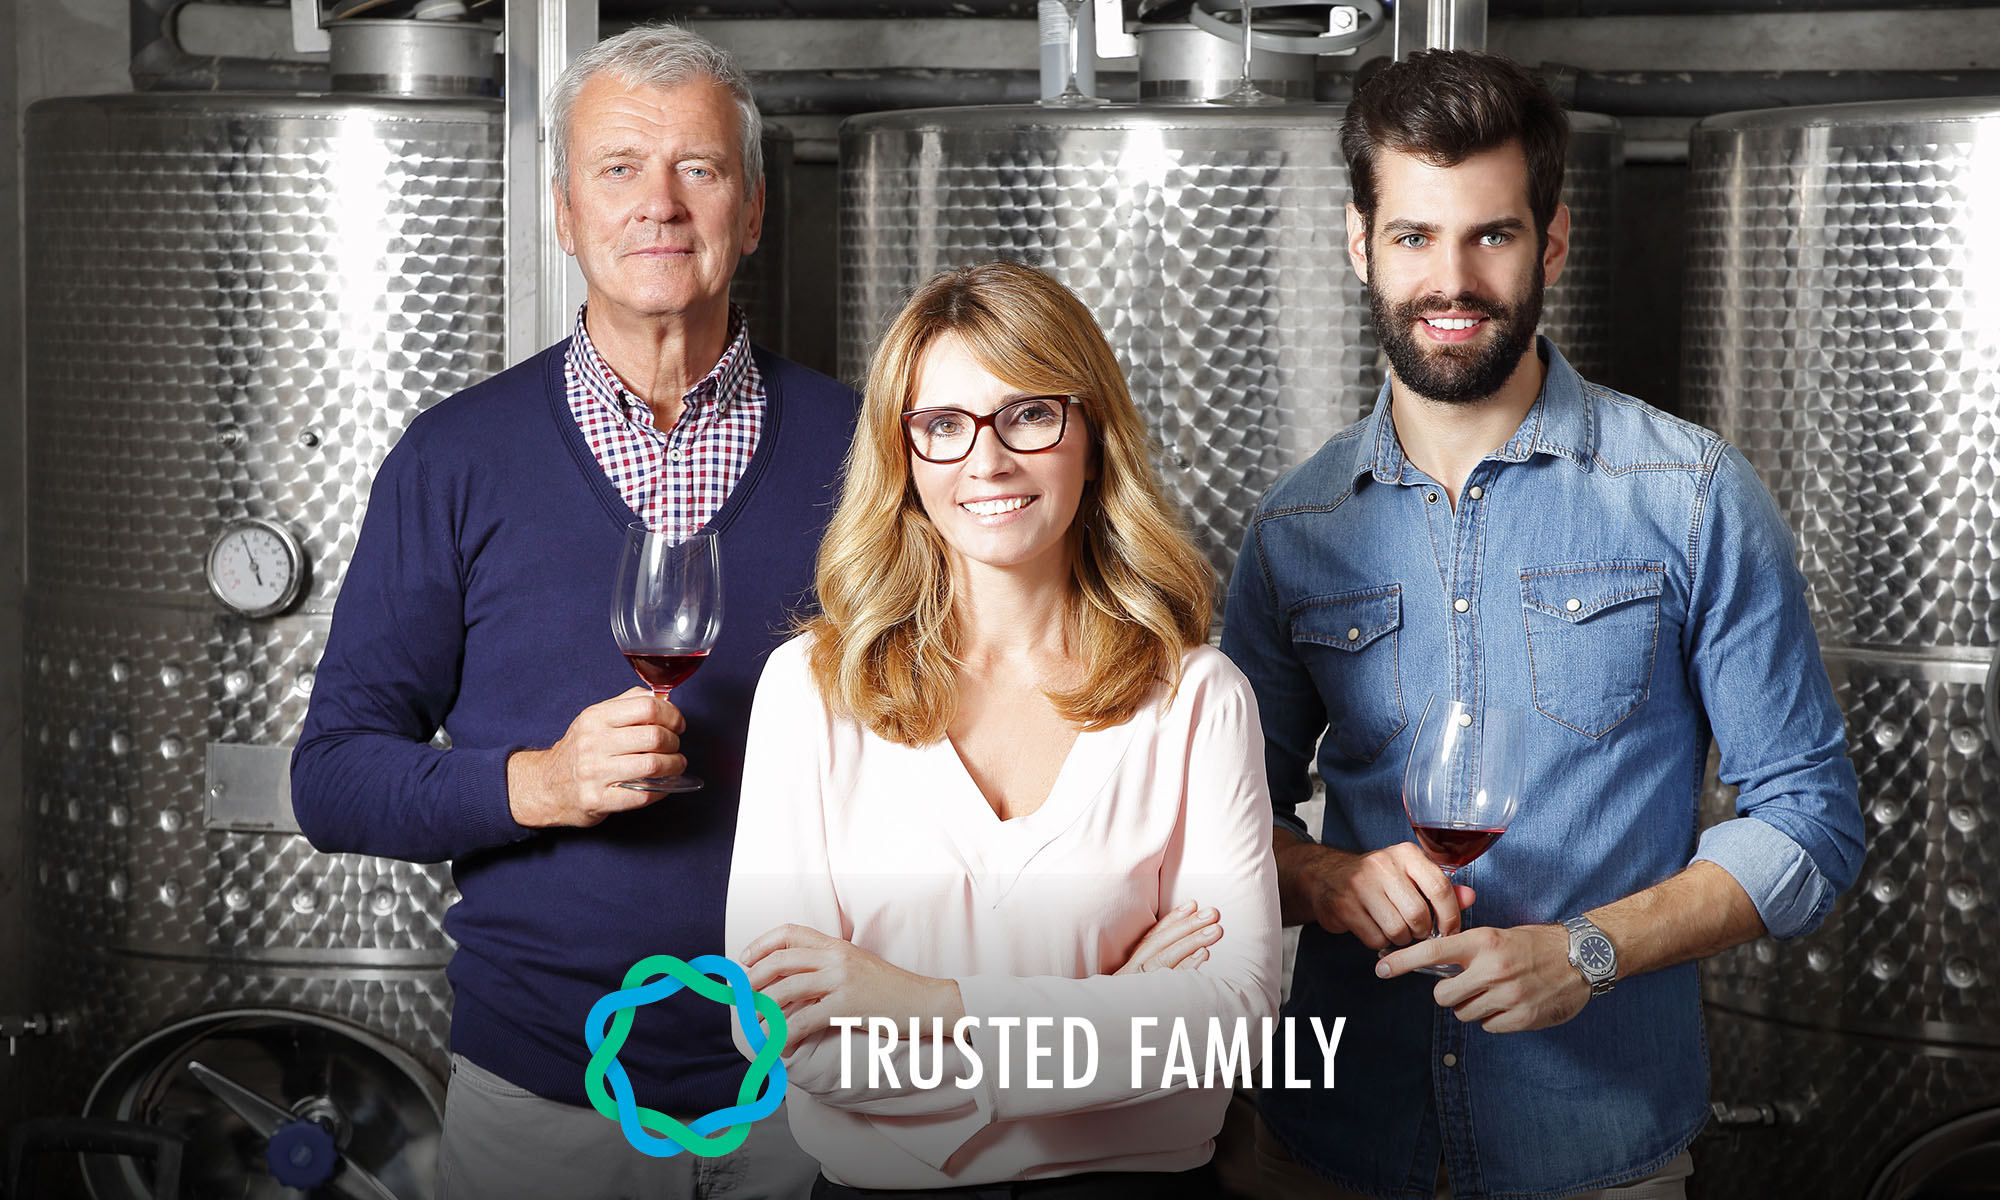 🧑💻 Trusted Family: UI/UX Design and development - Branding & Positionering